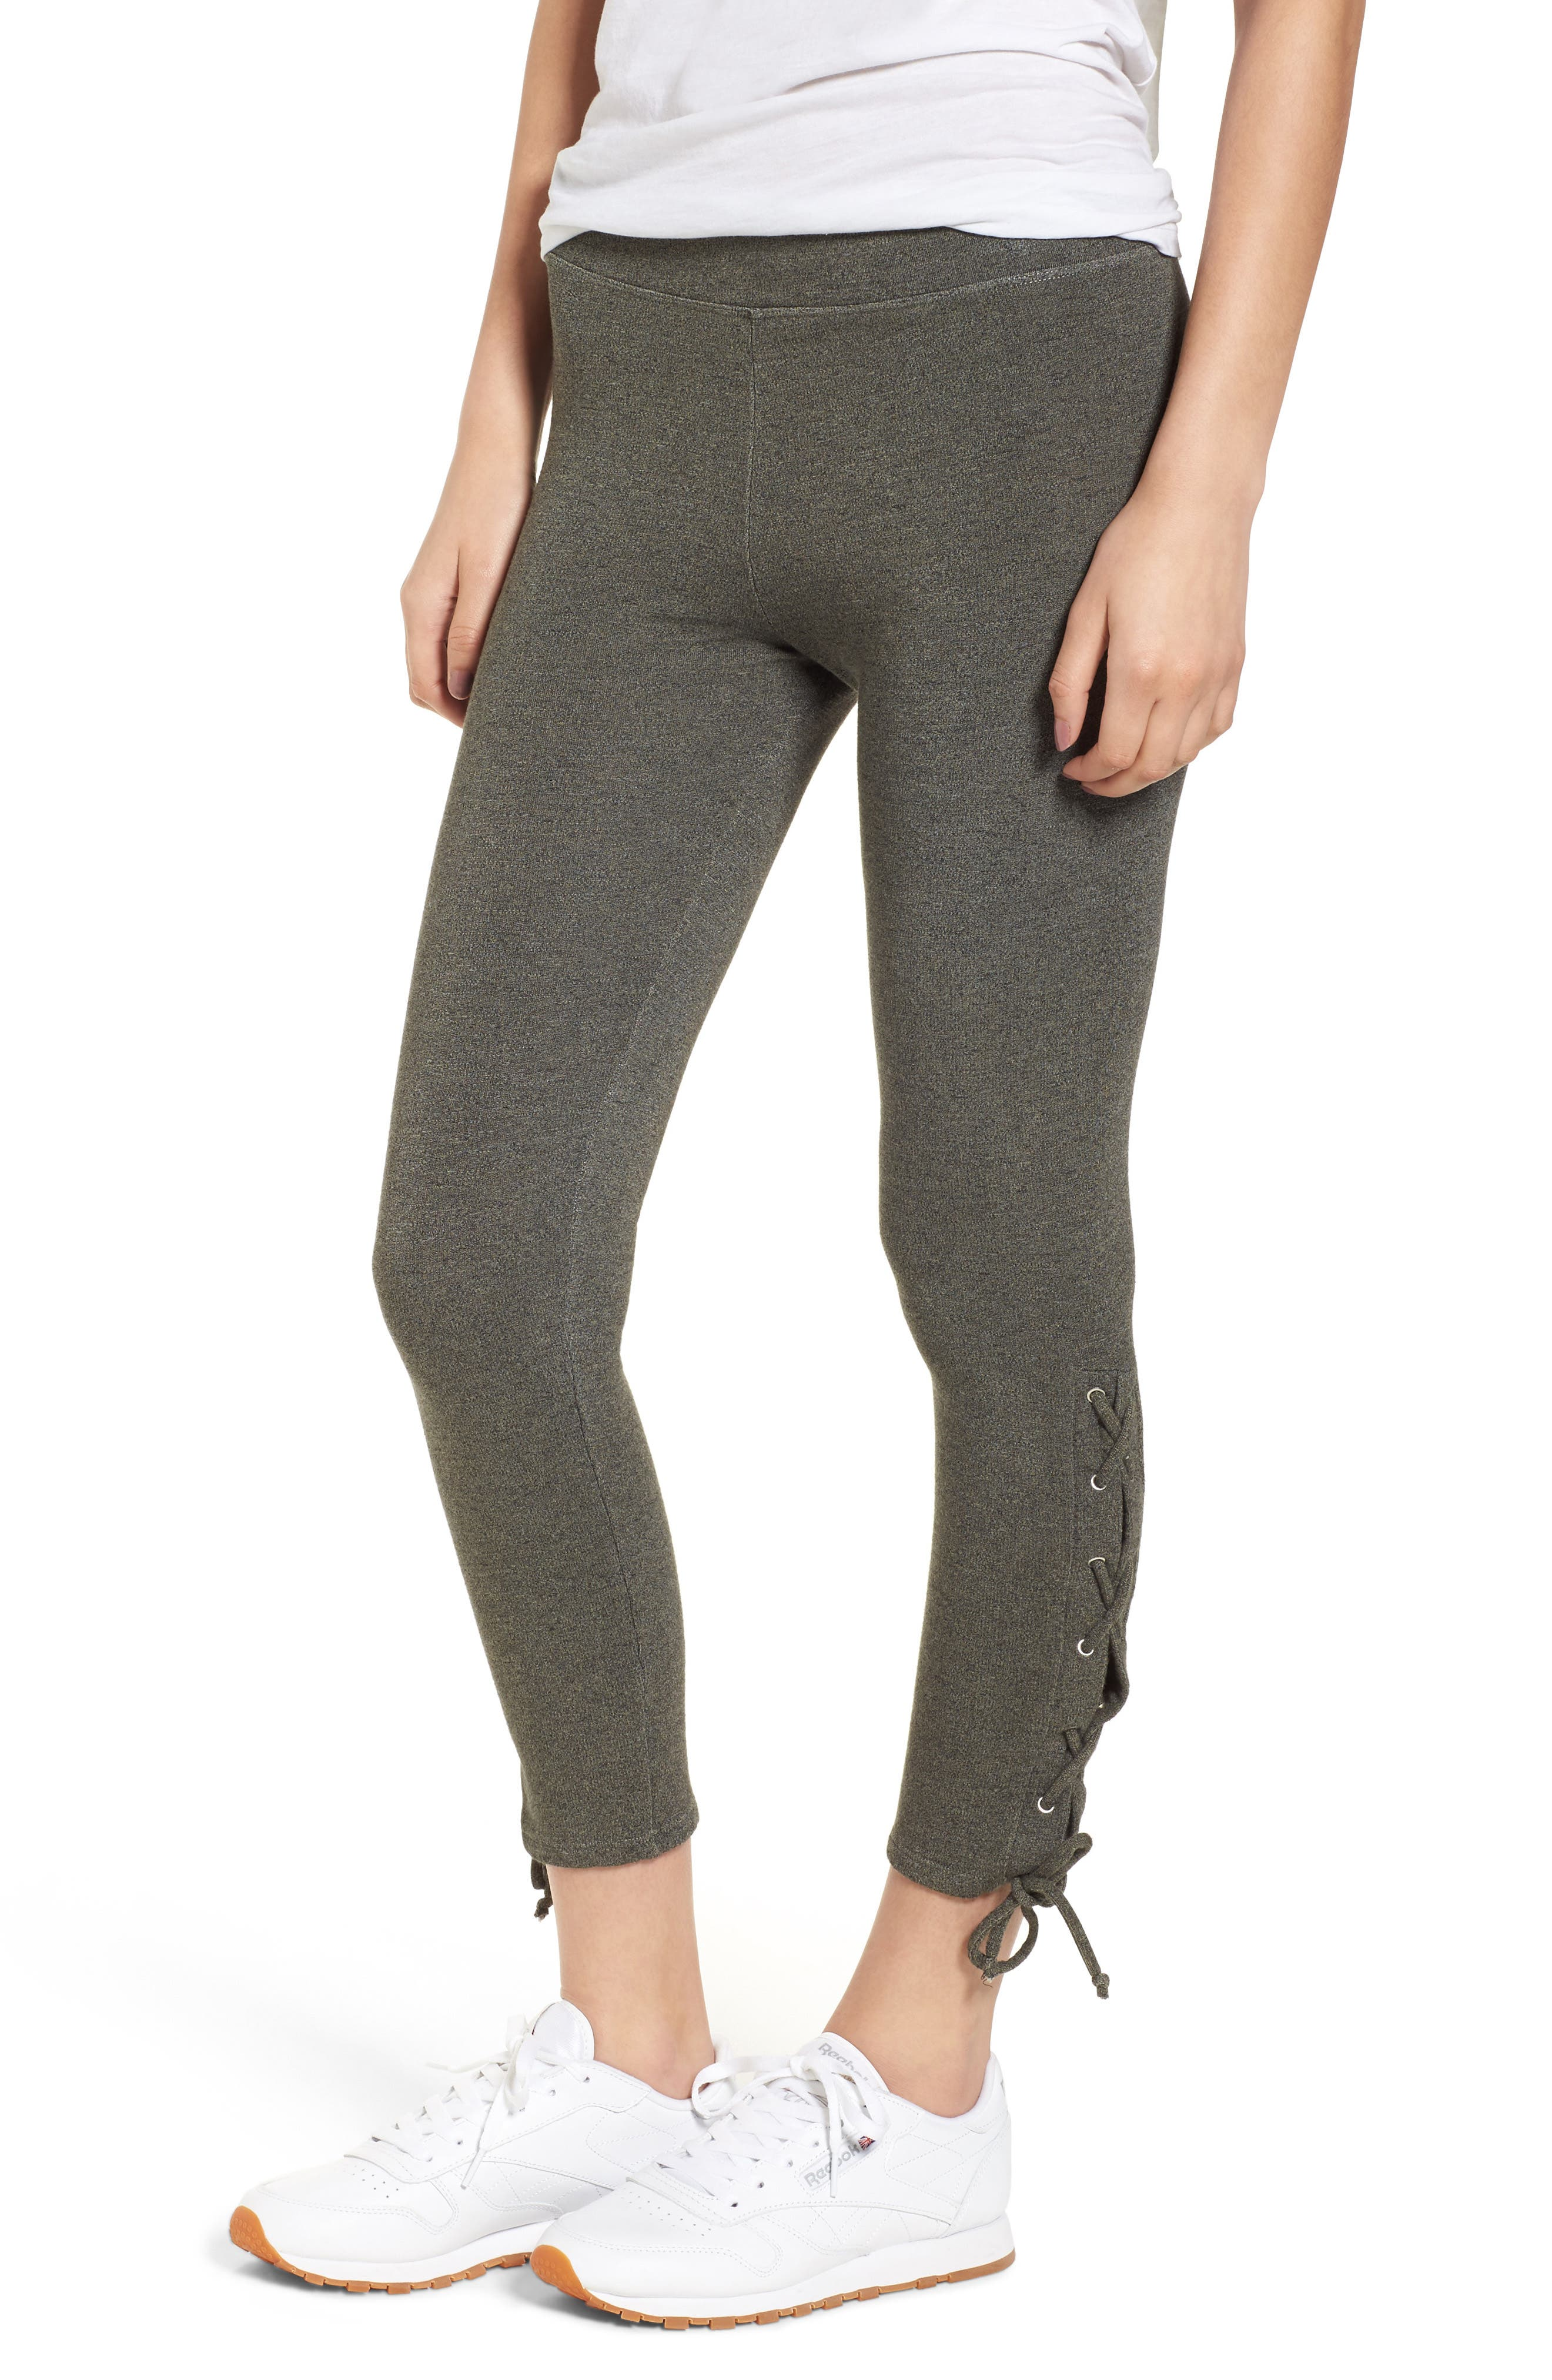 SUNDRY Lace-Up Ankle Leggings, Main, color, 309